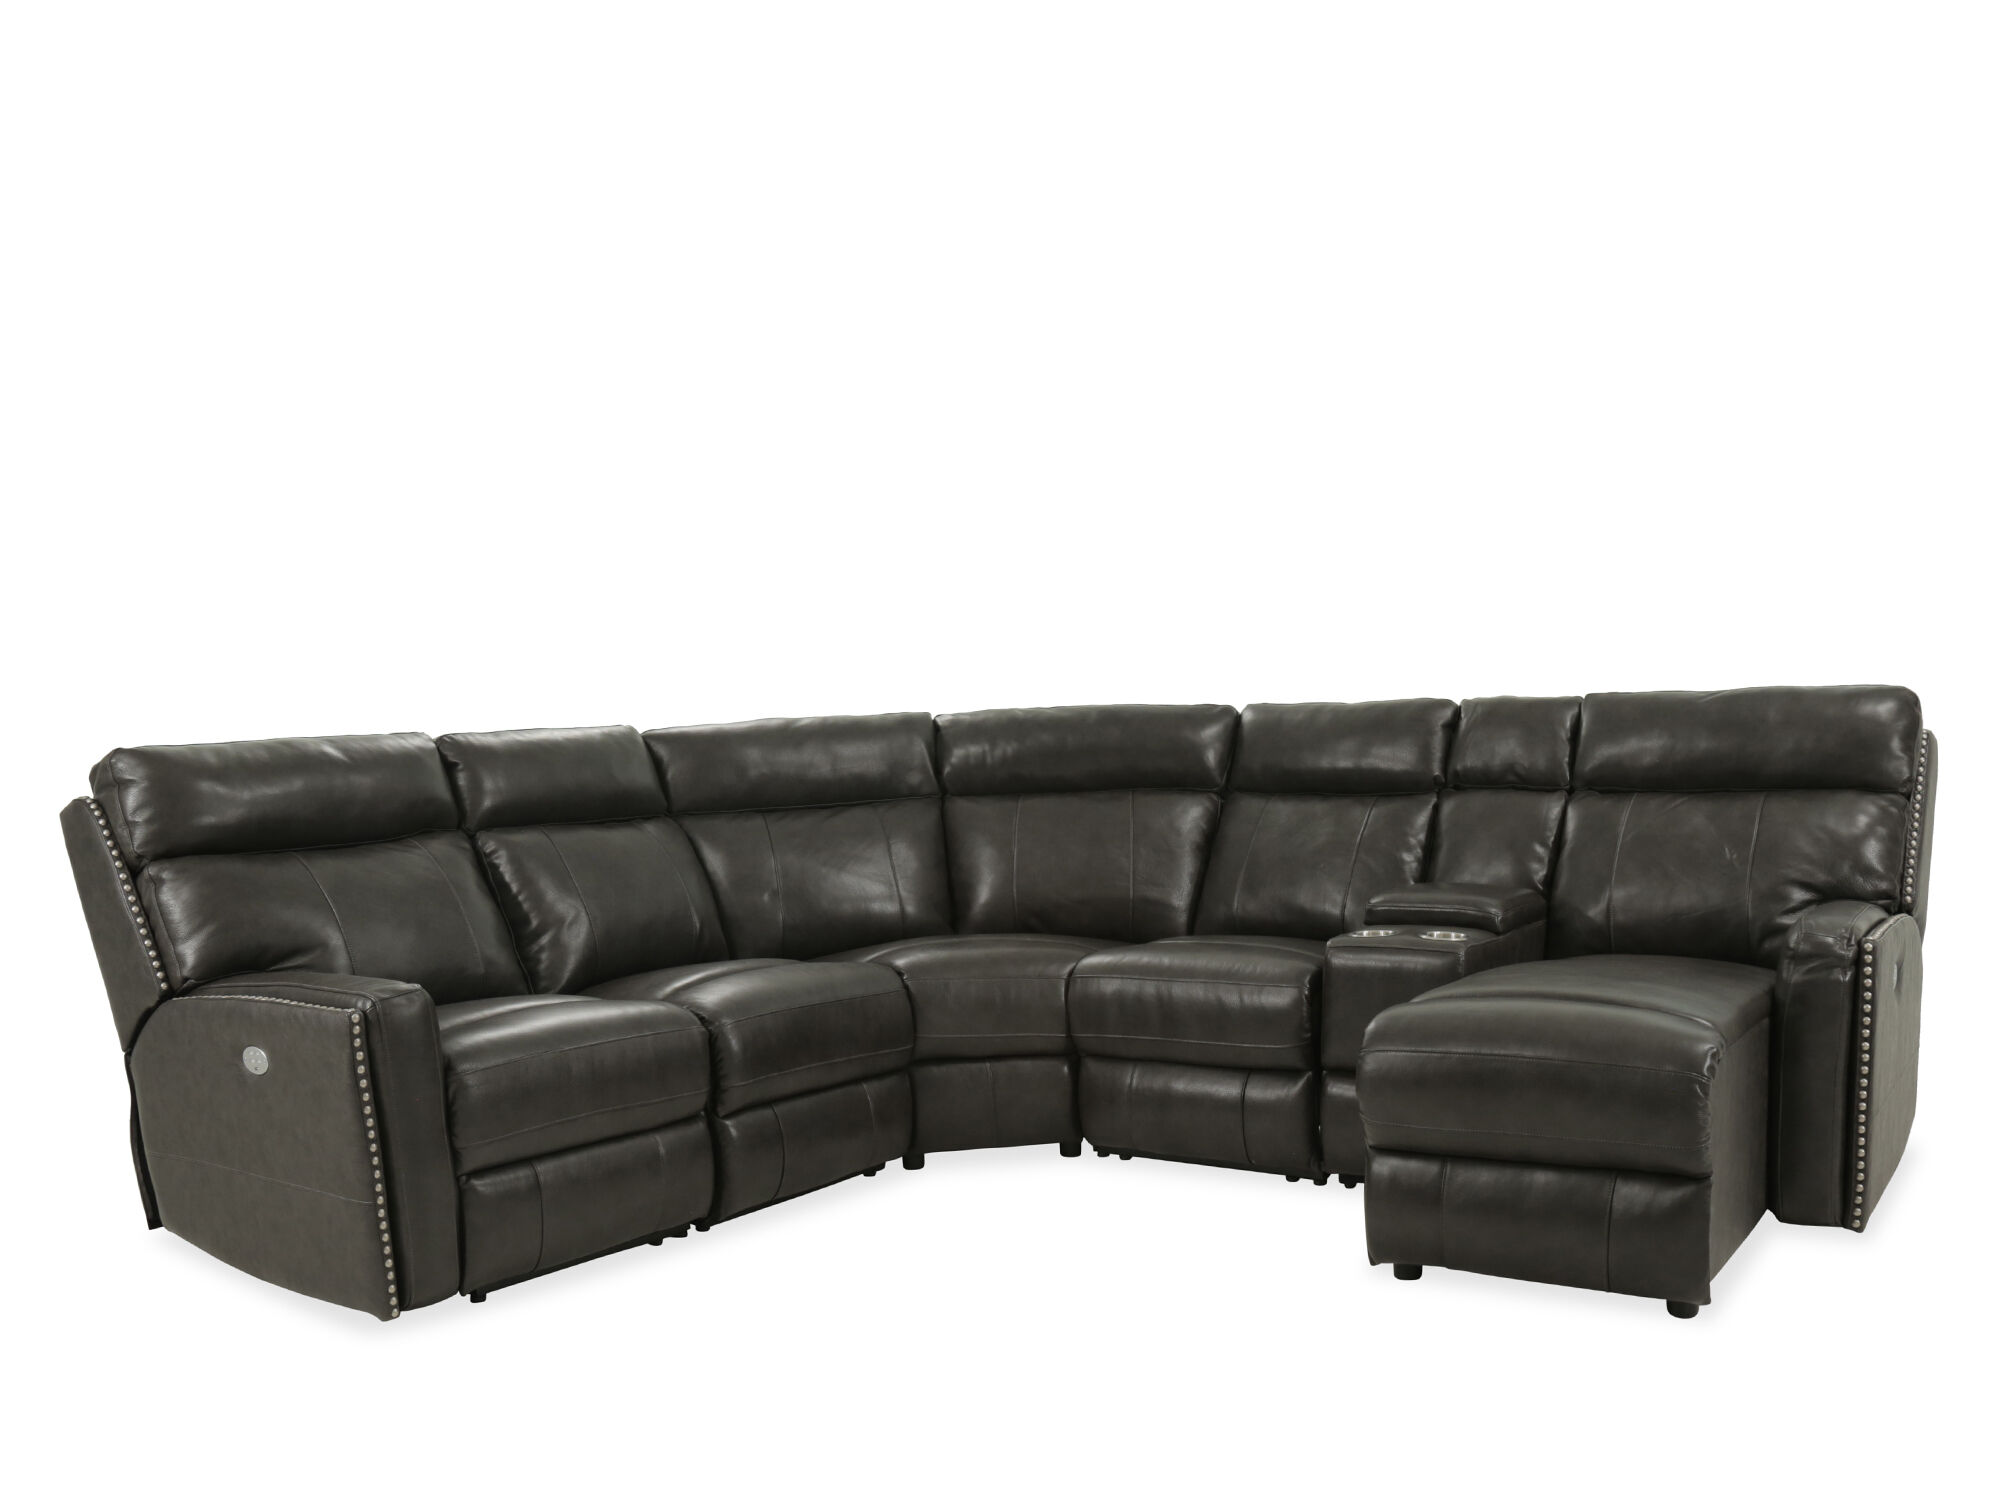 caruso leather 5 piece power motion sectional sofa max home reviews six reclining in black